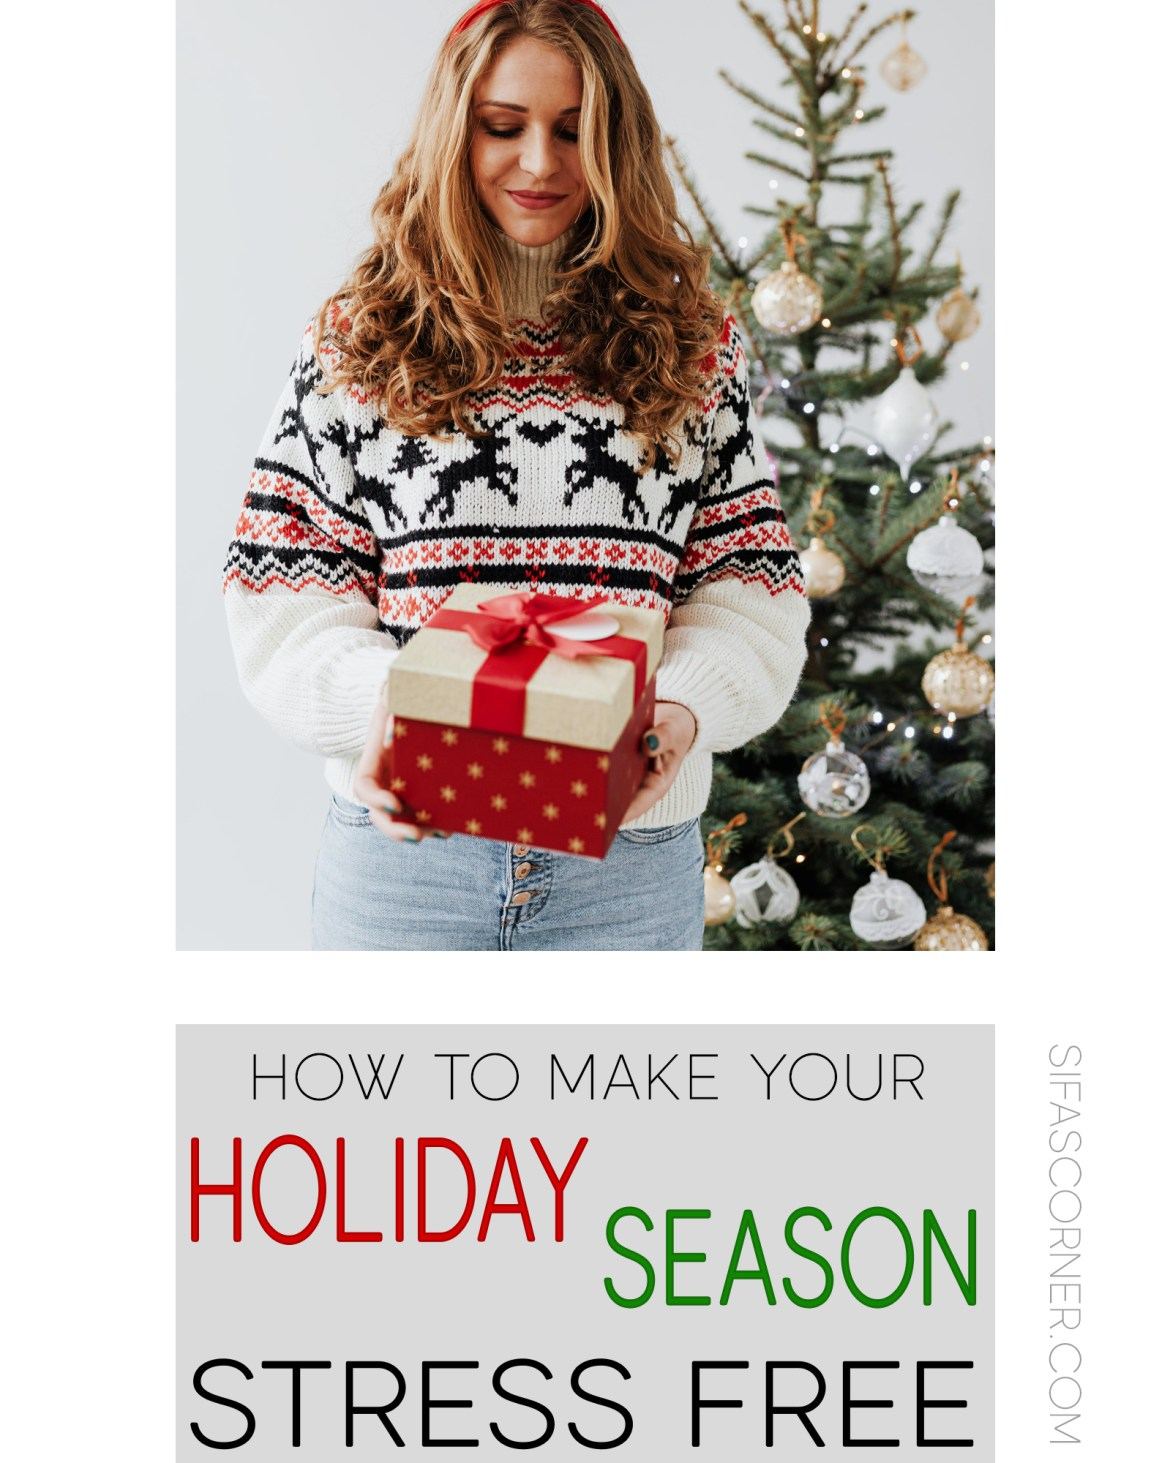 How to Make Your Holiday Season Stress Free